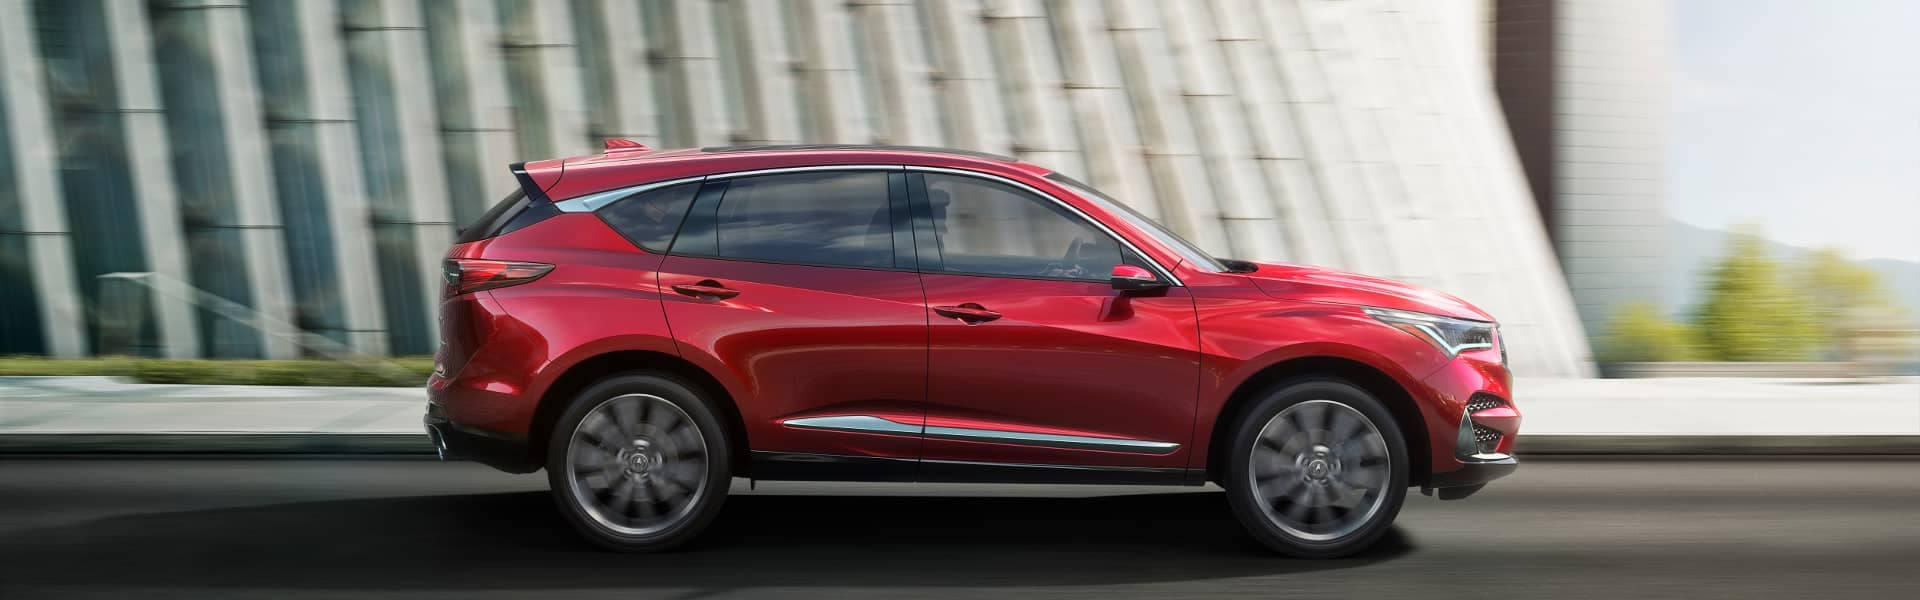 2019 Acura Rdx Prototype Technology Features Continental Acura Of